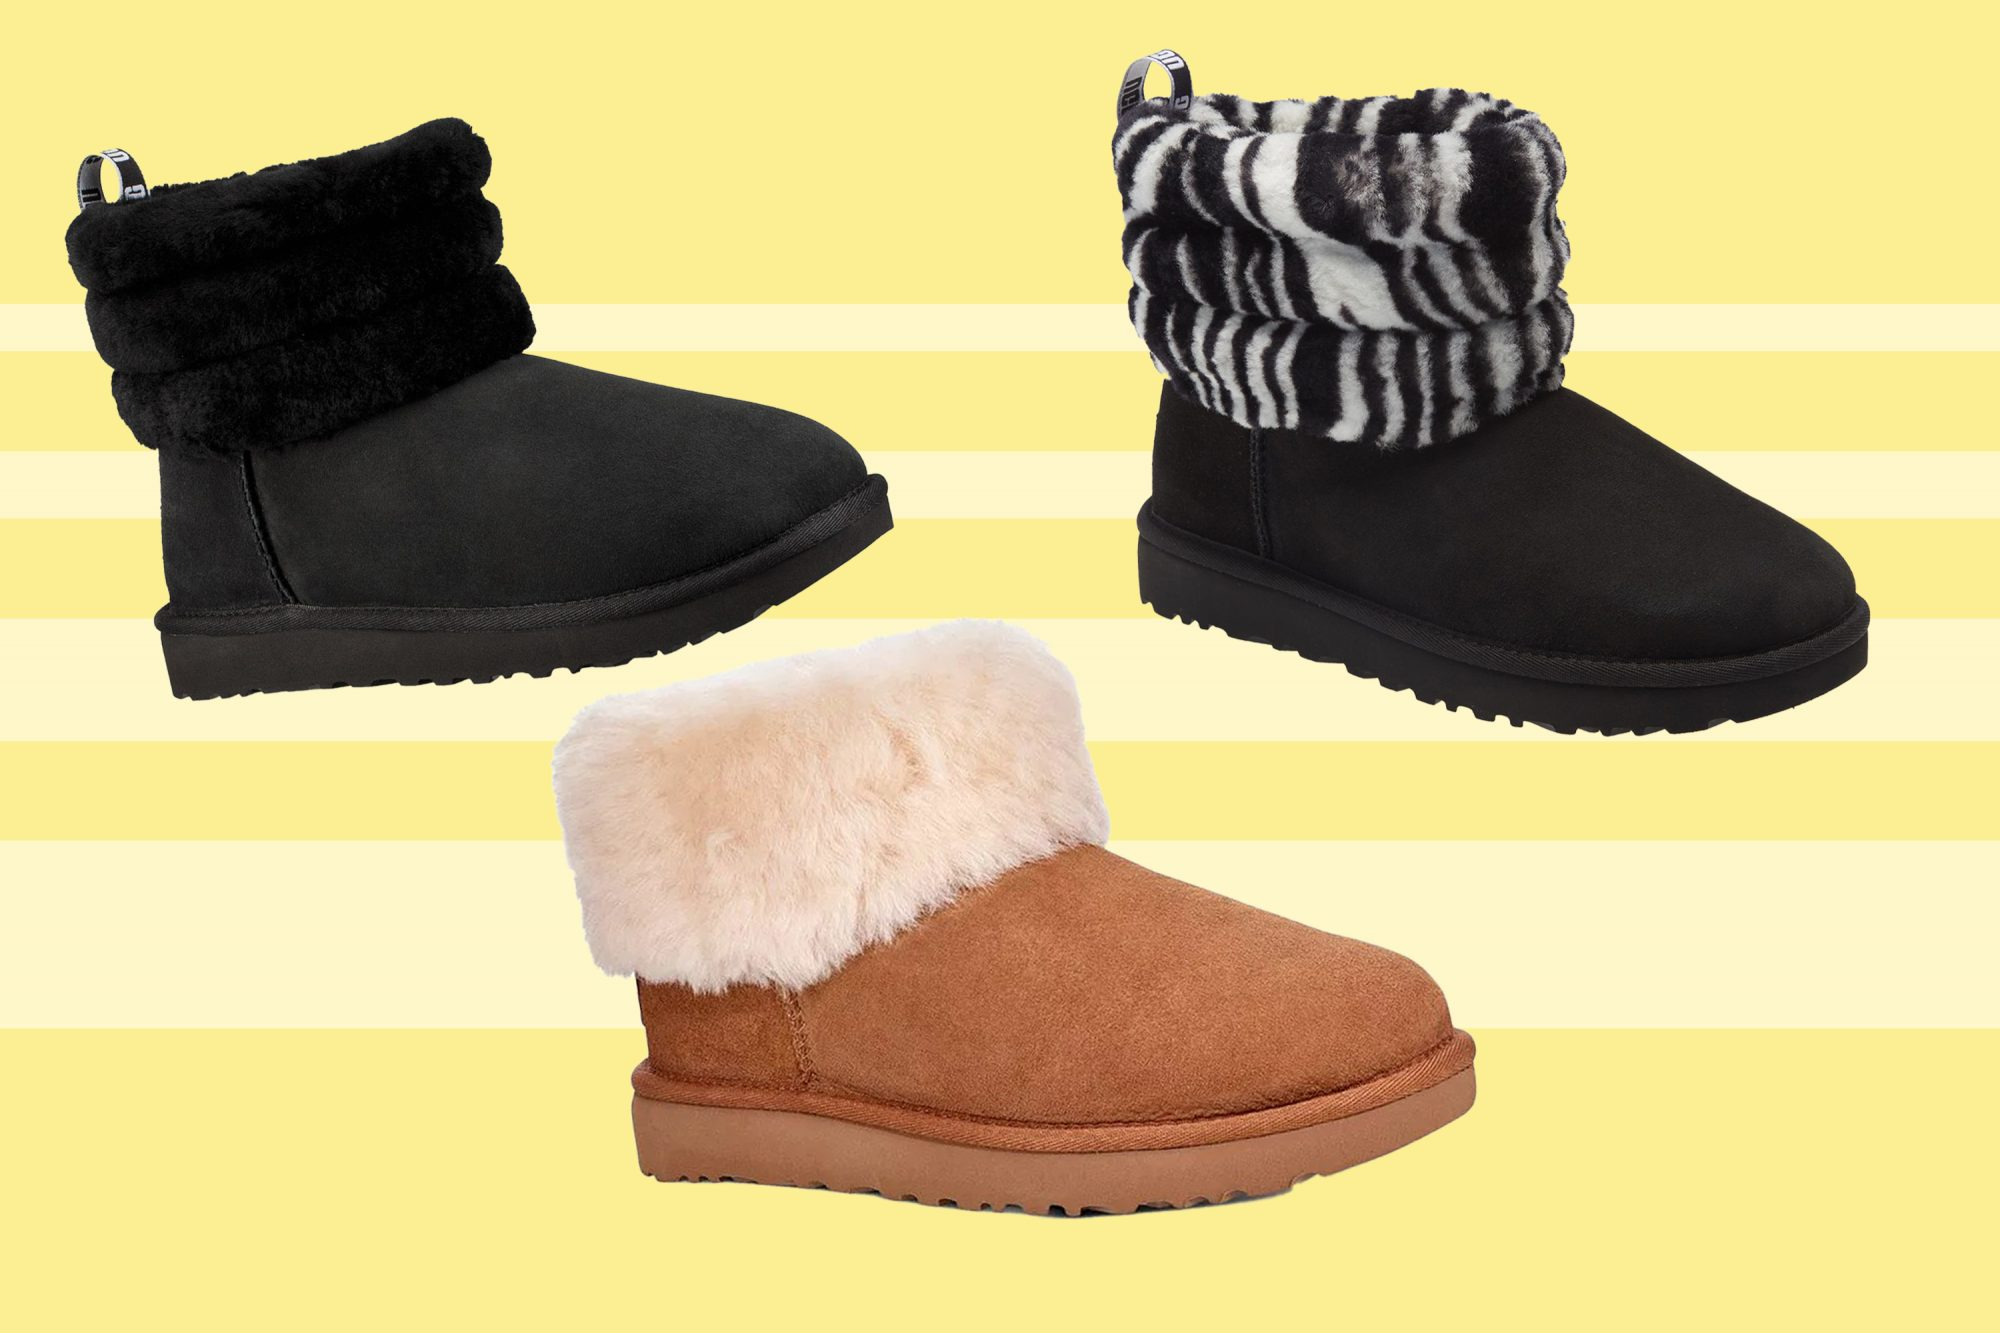 Ugg Black Friday 2020: Best Boot and